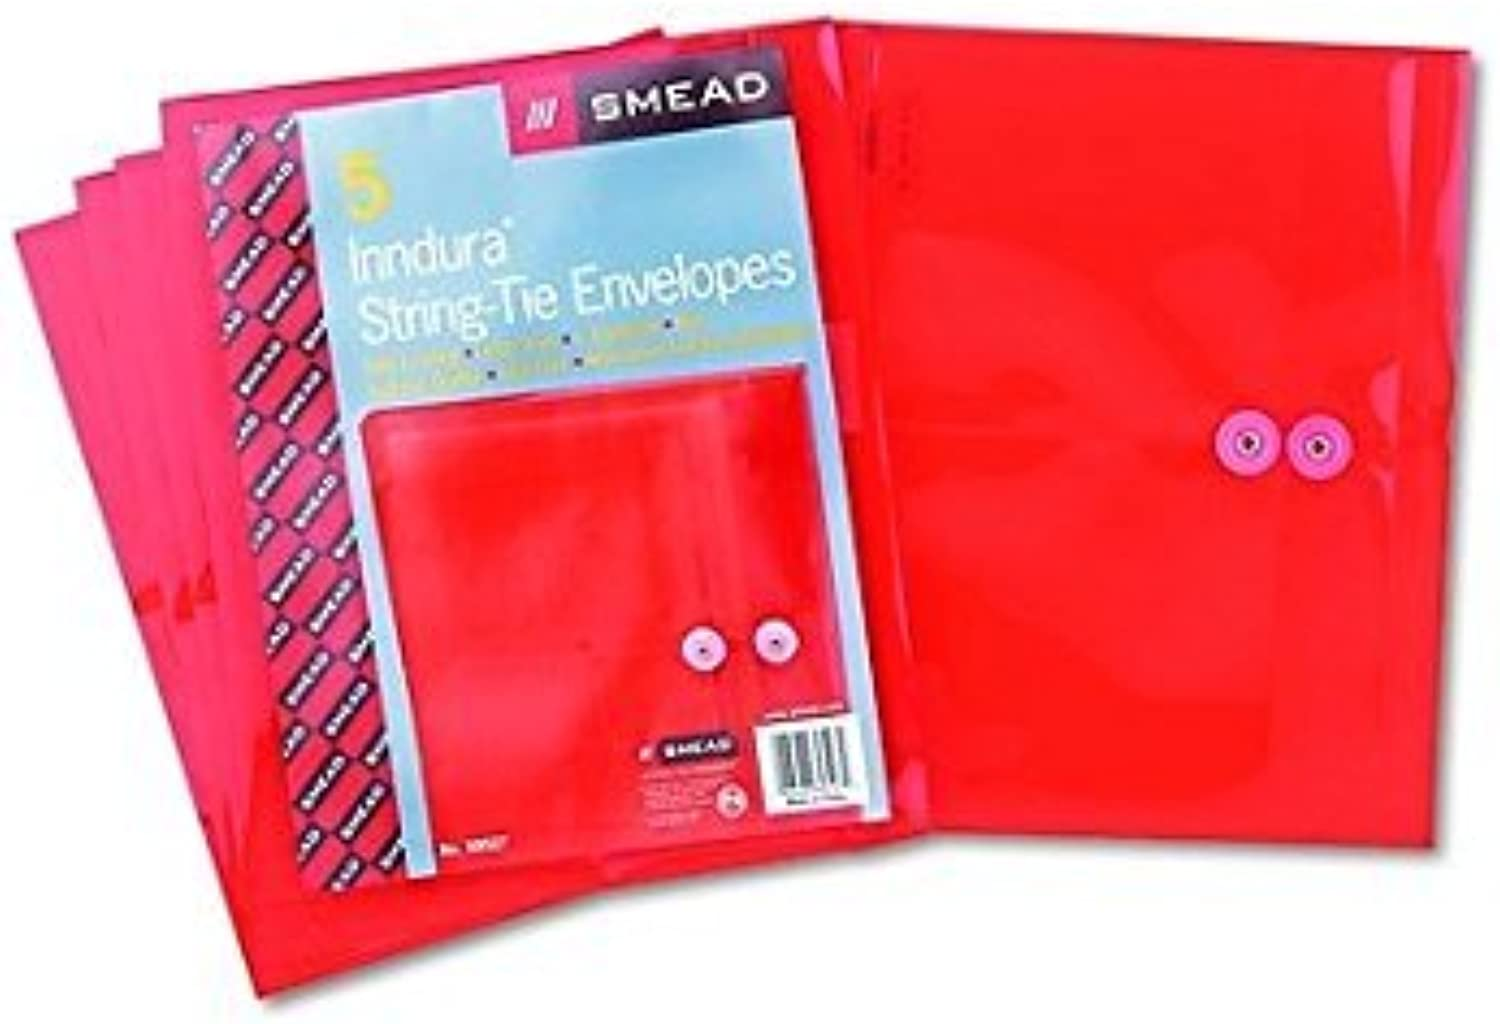 Smead Poly String & & & Button Booklet Envelope, 9-3 4 x 11-5 8 x 1-1 4 - 5 per Pack,Farbe rot , (Pack of 2) by Smead B016P3KGBI | Elegant